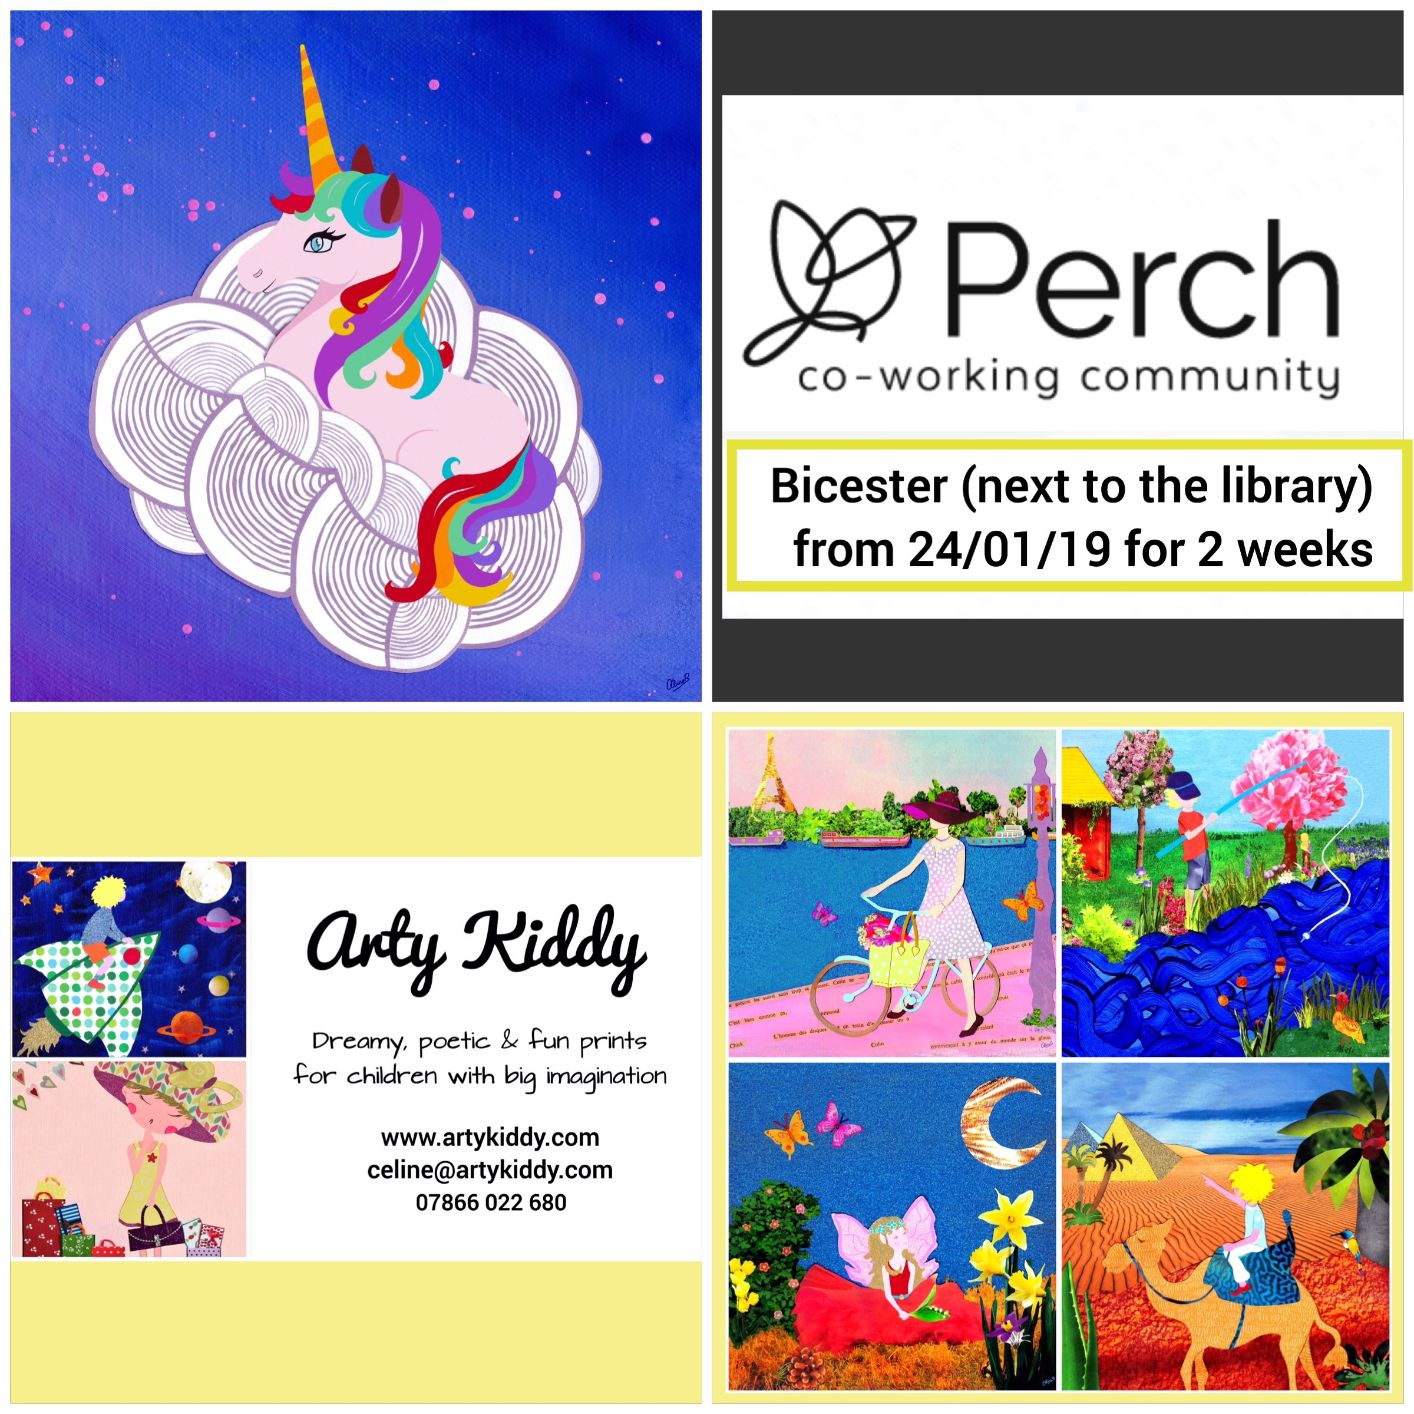 Perch Business Centre & Arty Kiddy